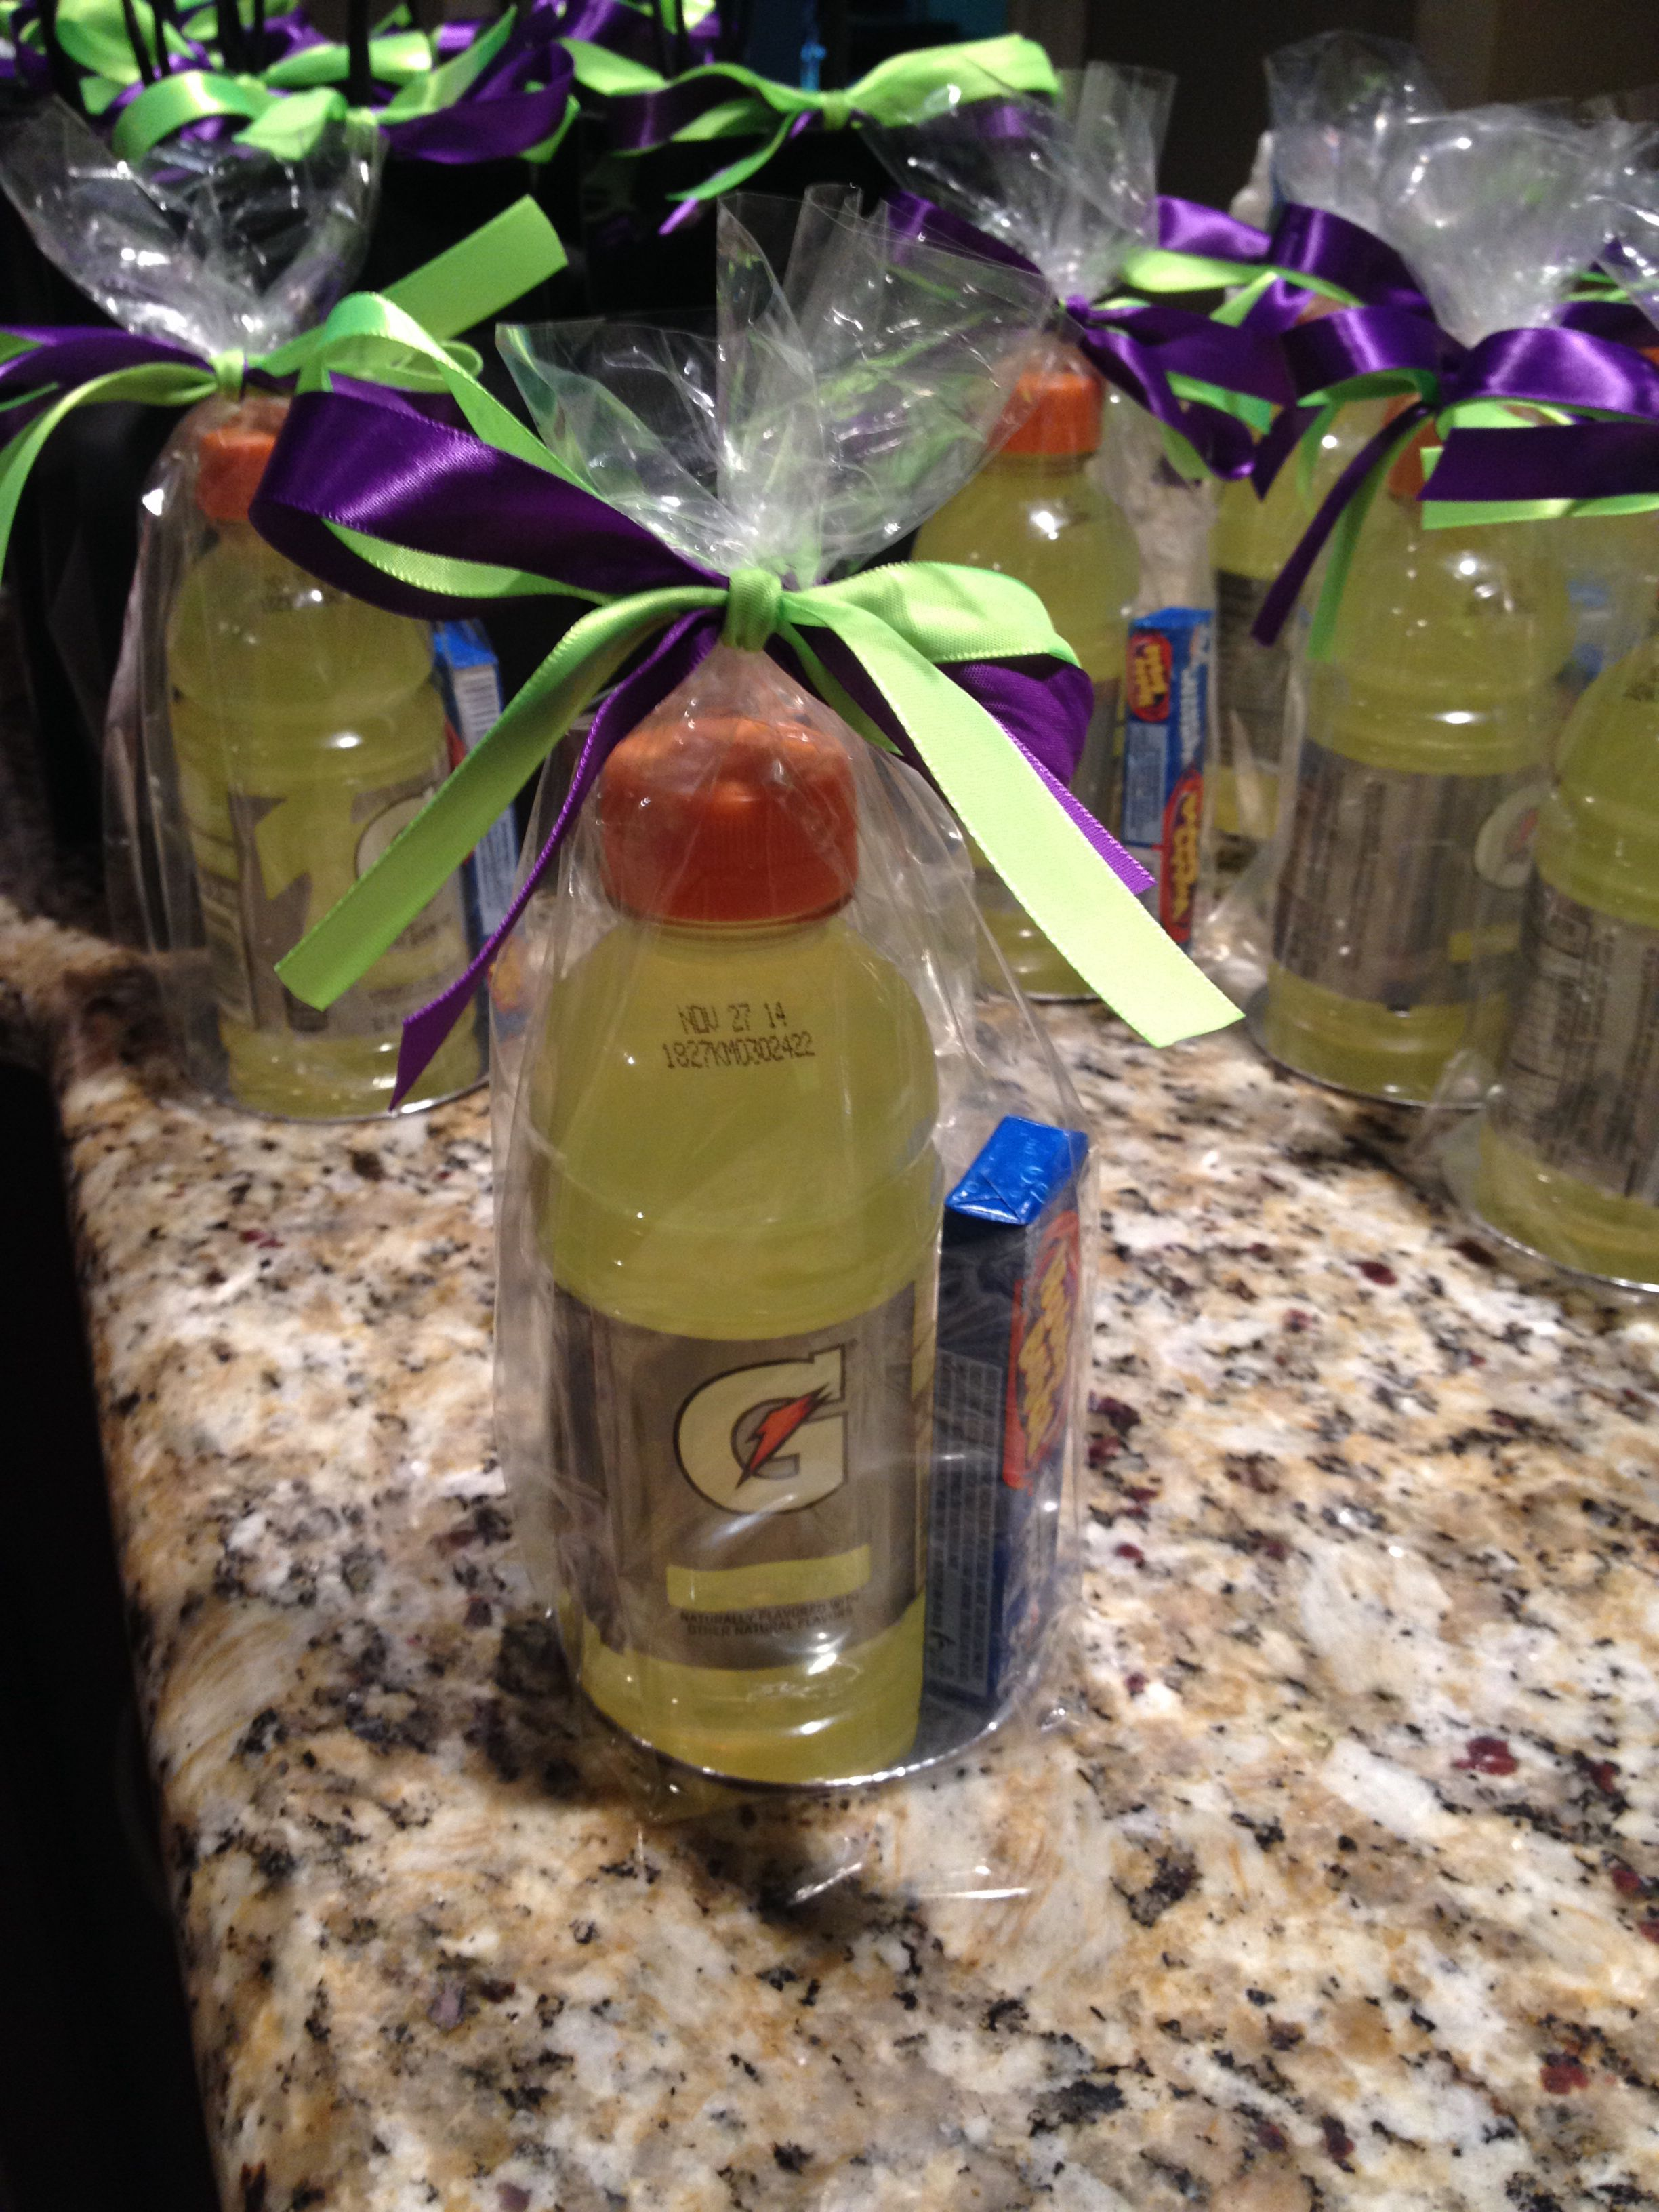 Pin By Caitlyn16 On Volleyball Volleyball Snacks Volleyball Team Gifts Soccer Gifts